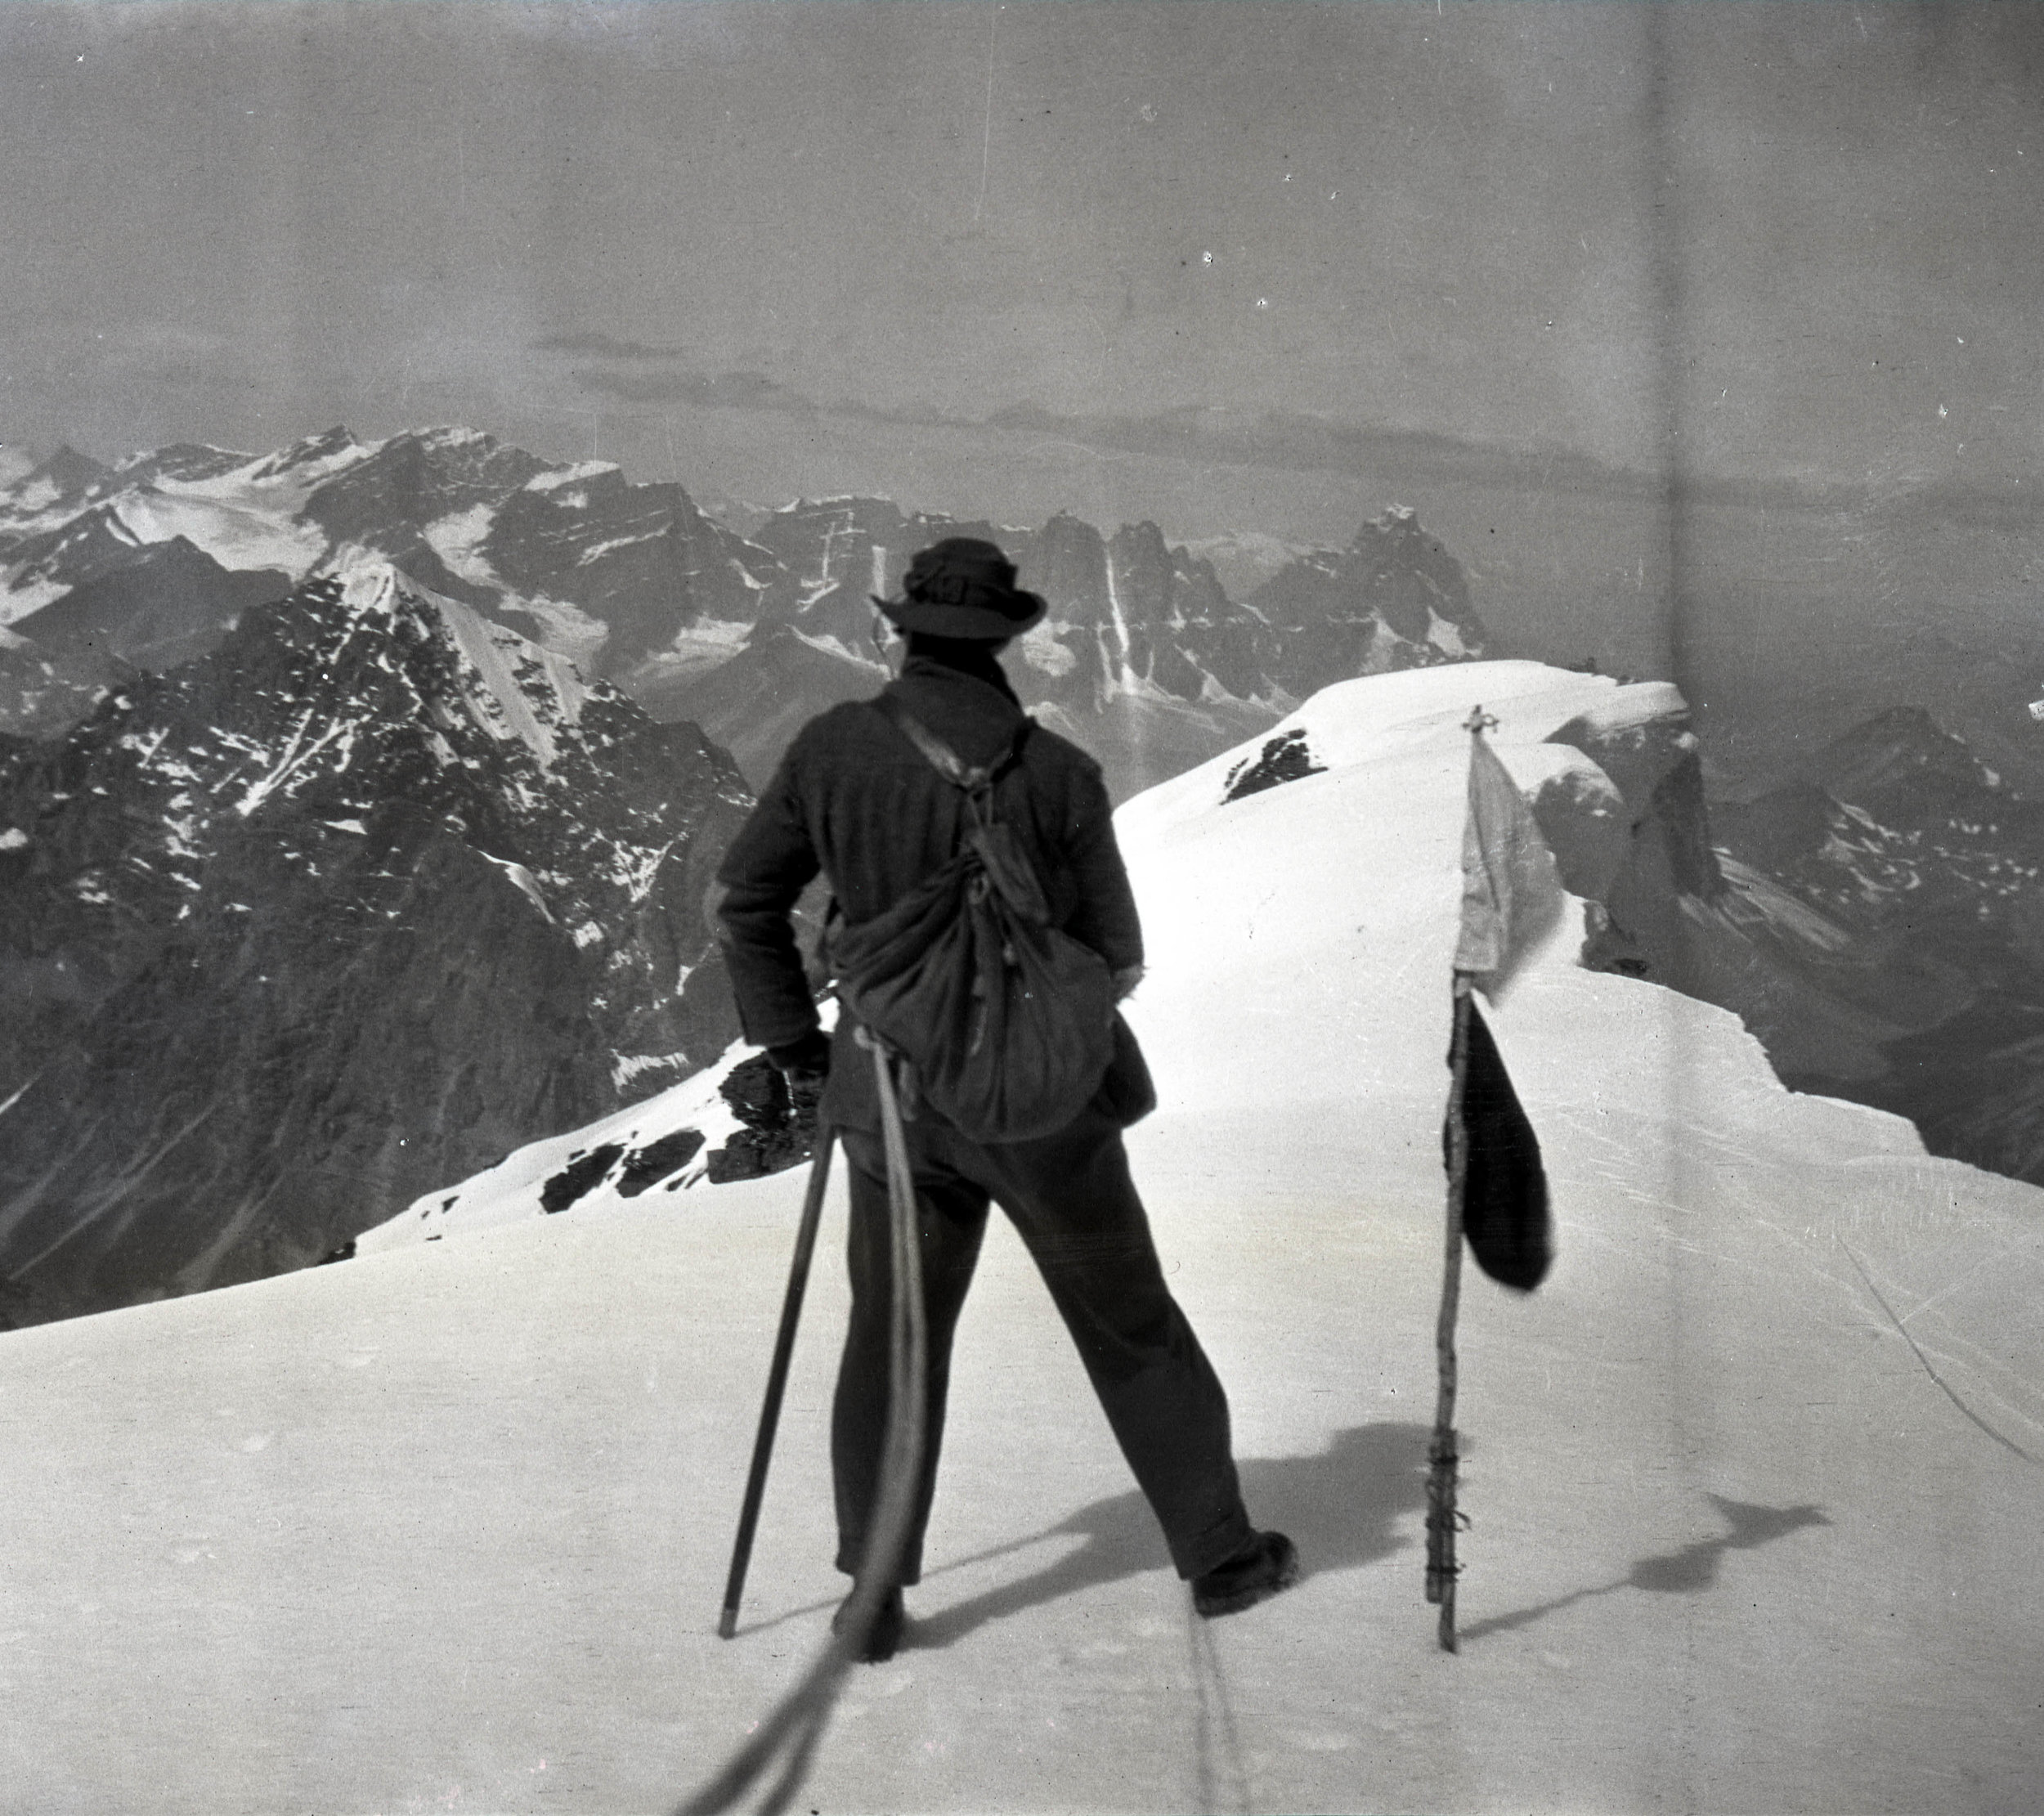 The summit of Mount Edith Cavell